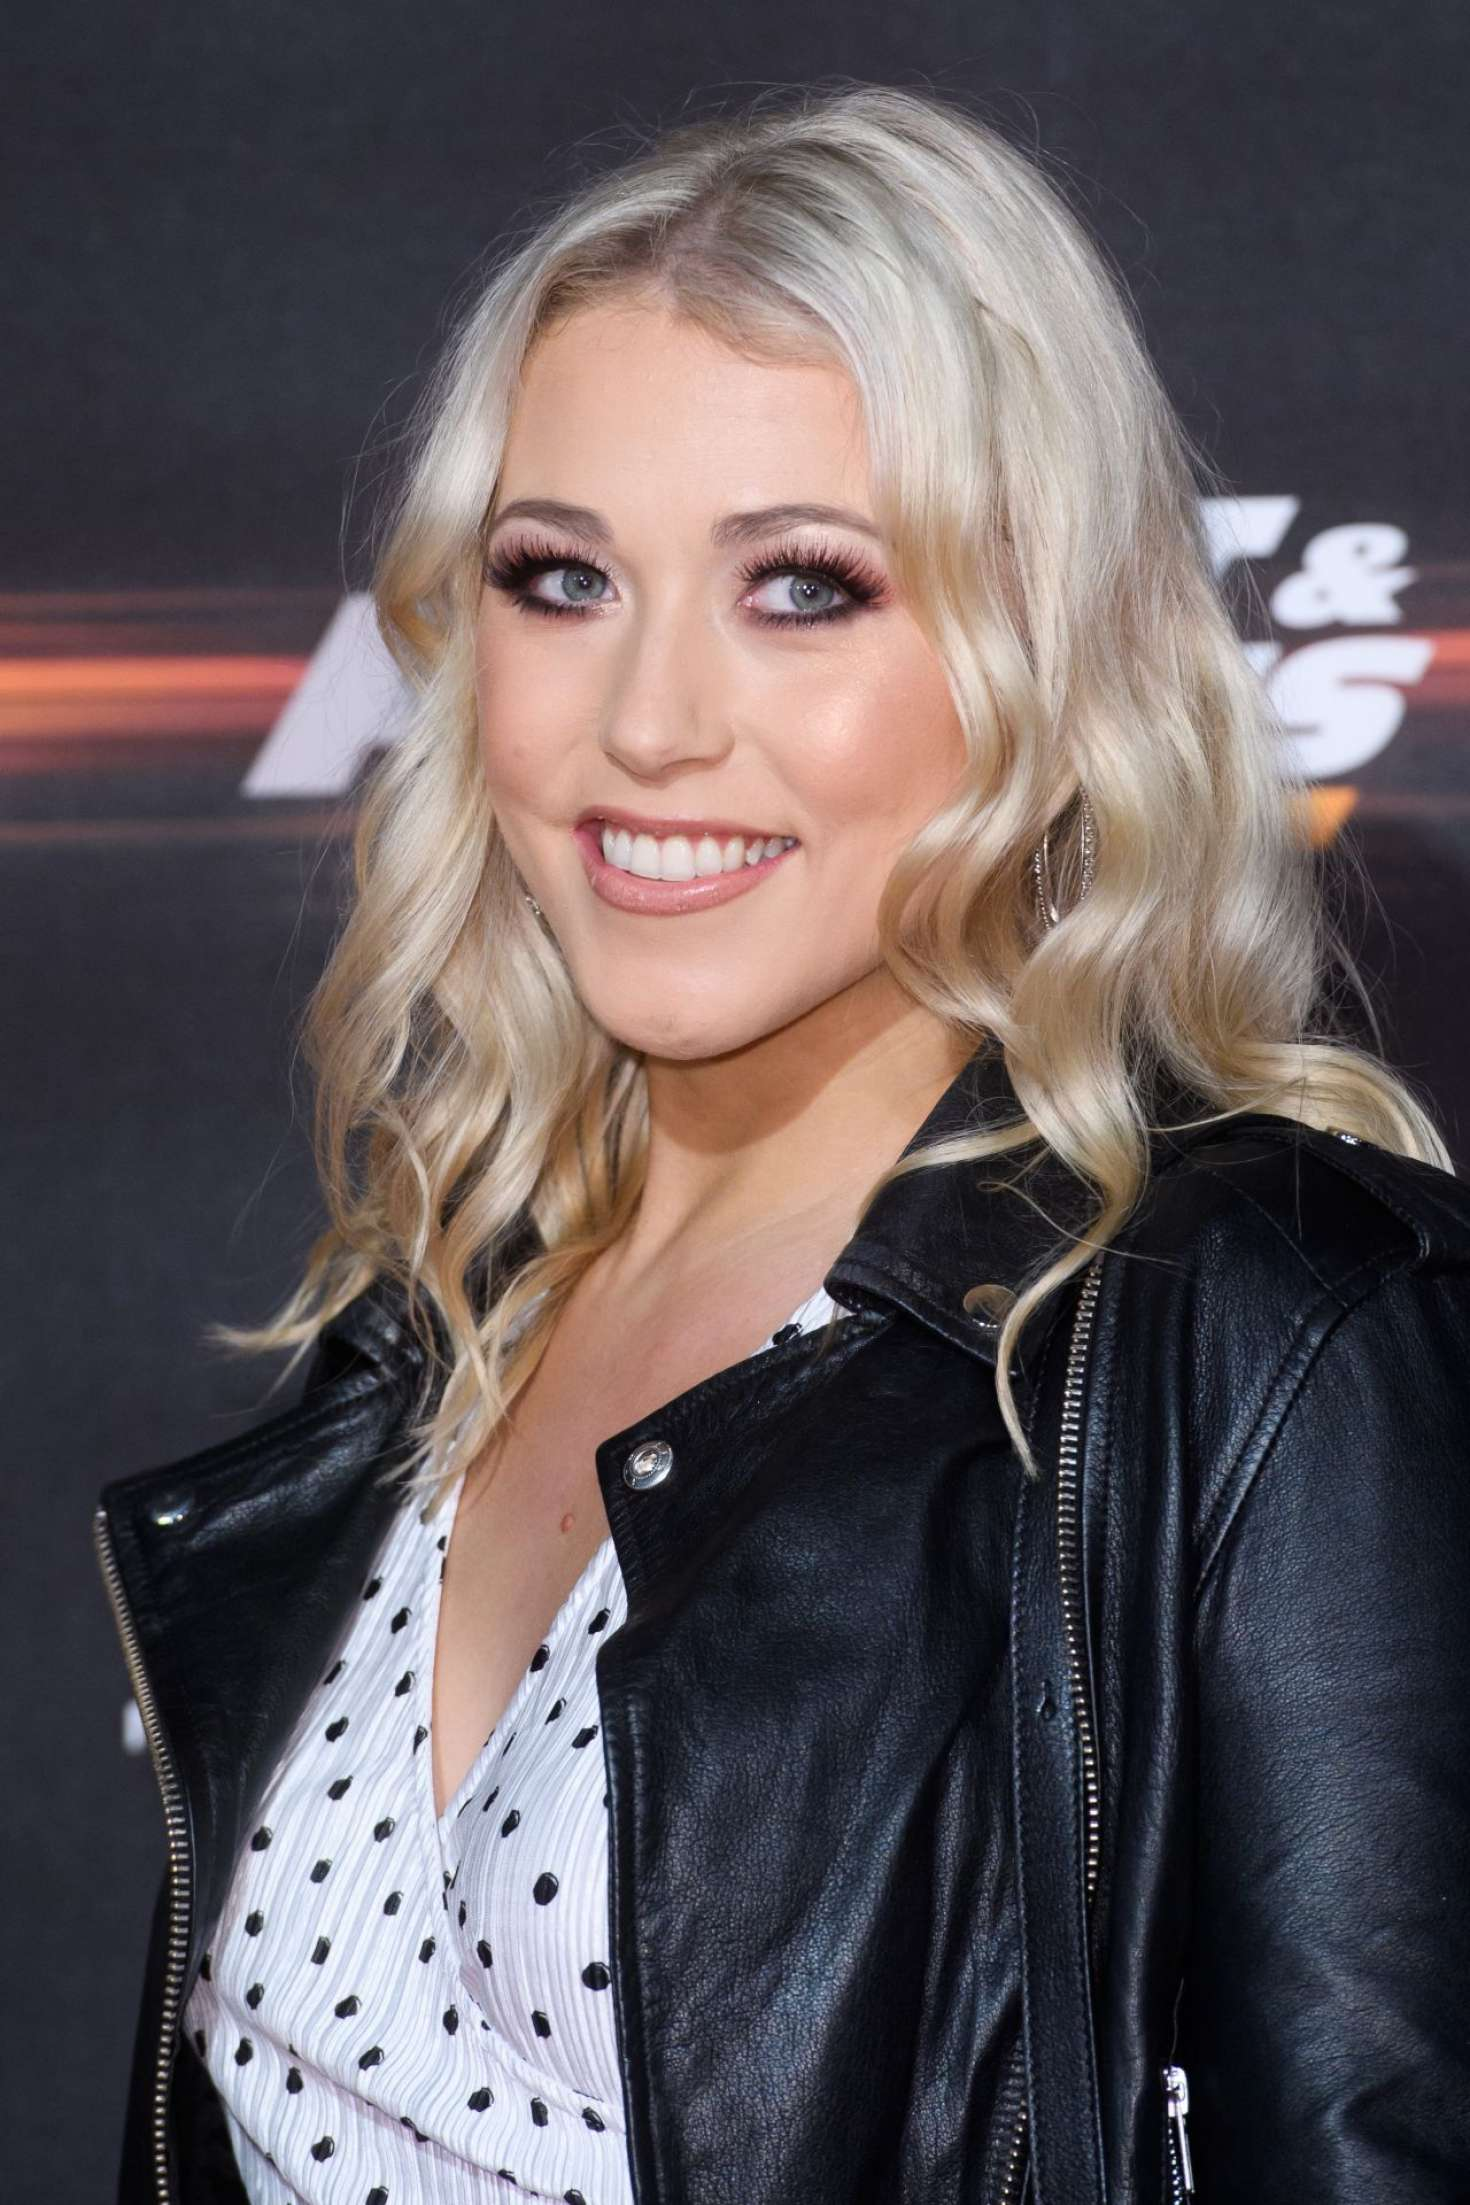 Amelia Lily - Fast and Furious Live in London